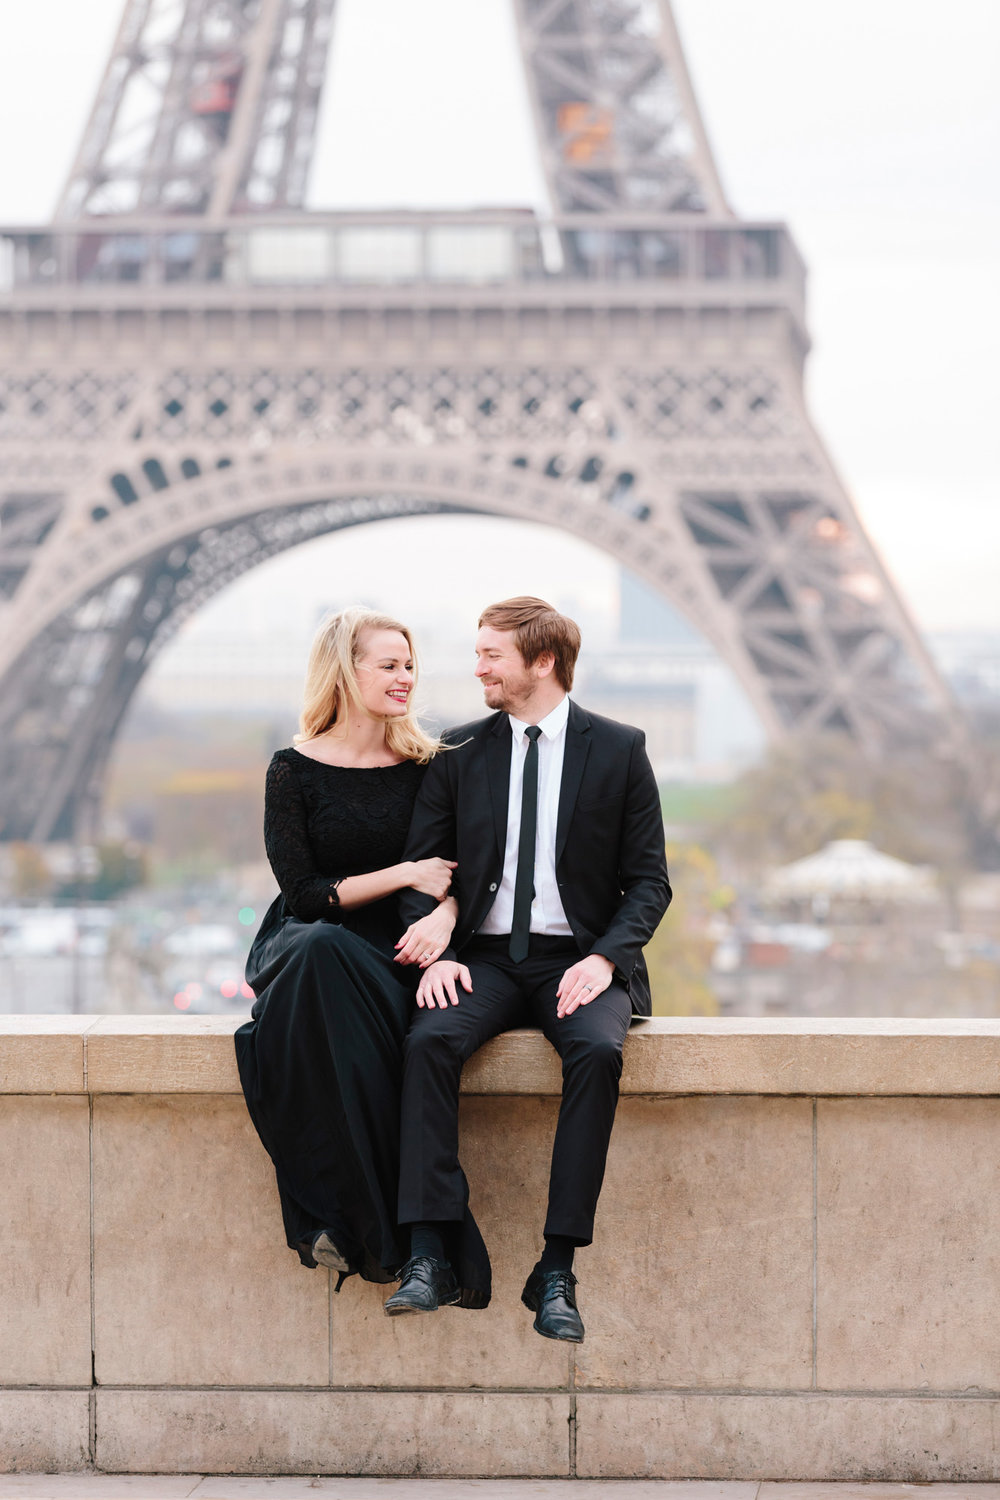 Paris Photographer Federico Guendel couple engagement session at Trocadero with the view of the Eiffel Tower